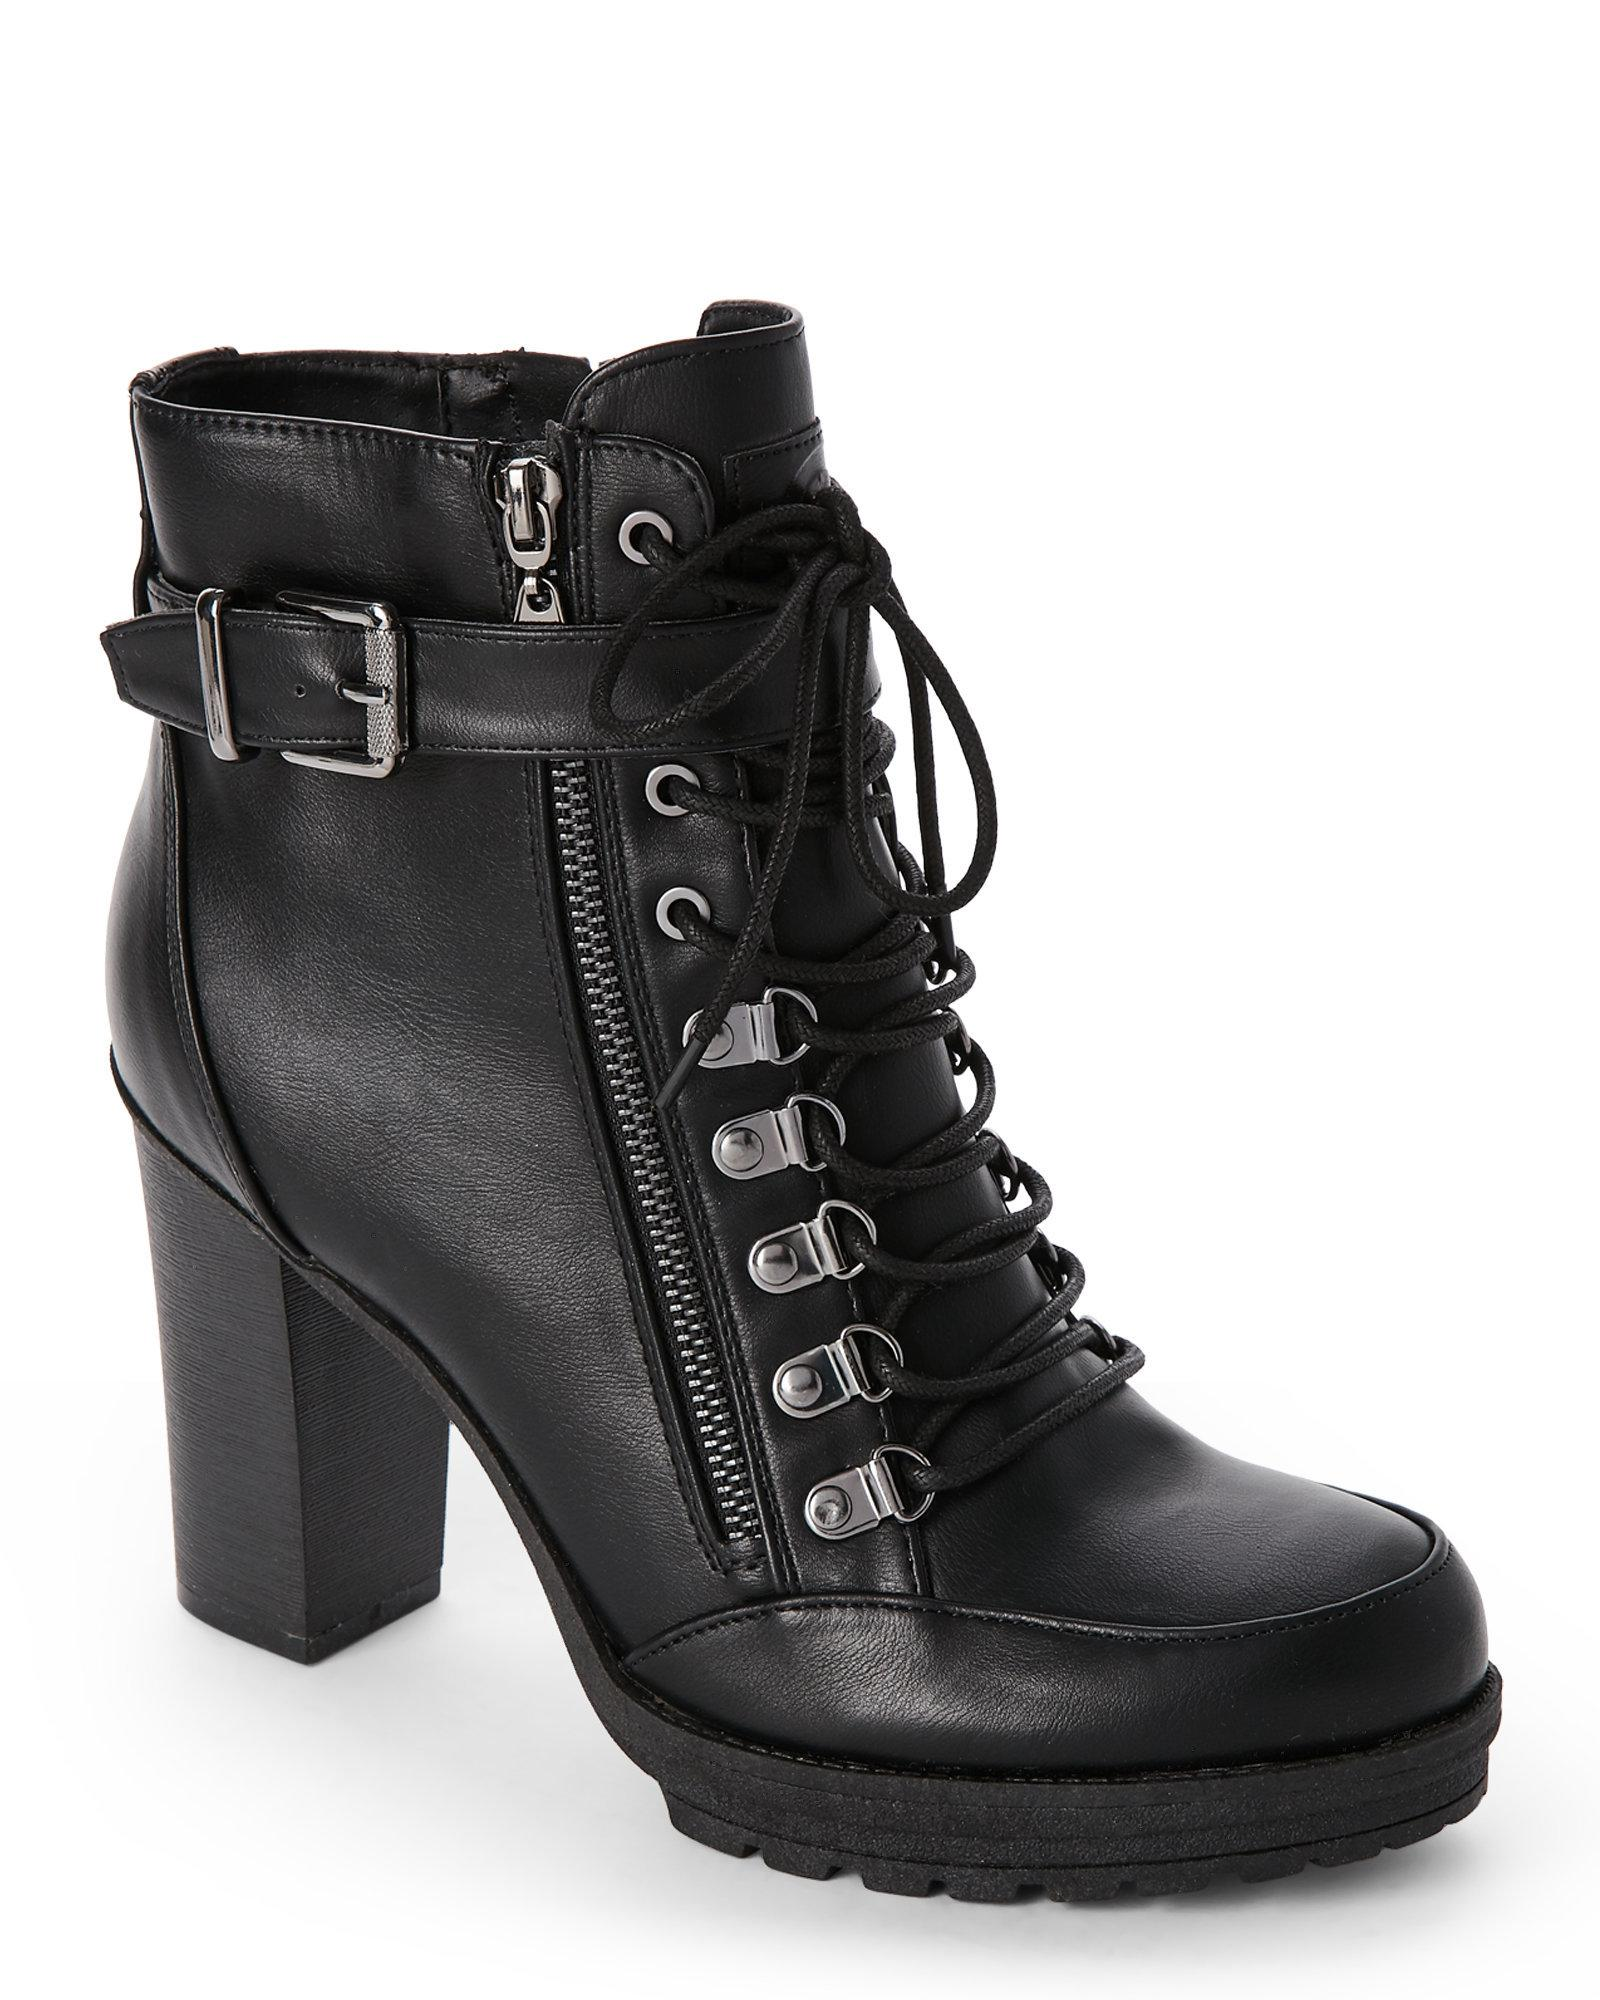 406c8b8c23 G by Guess Black Grazzy High Heel Combat Boots in Black - Lyst